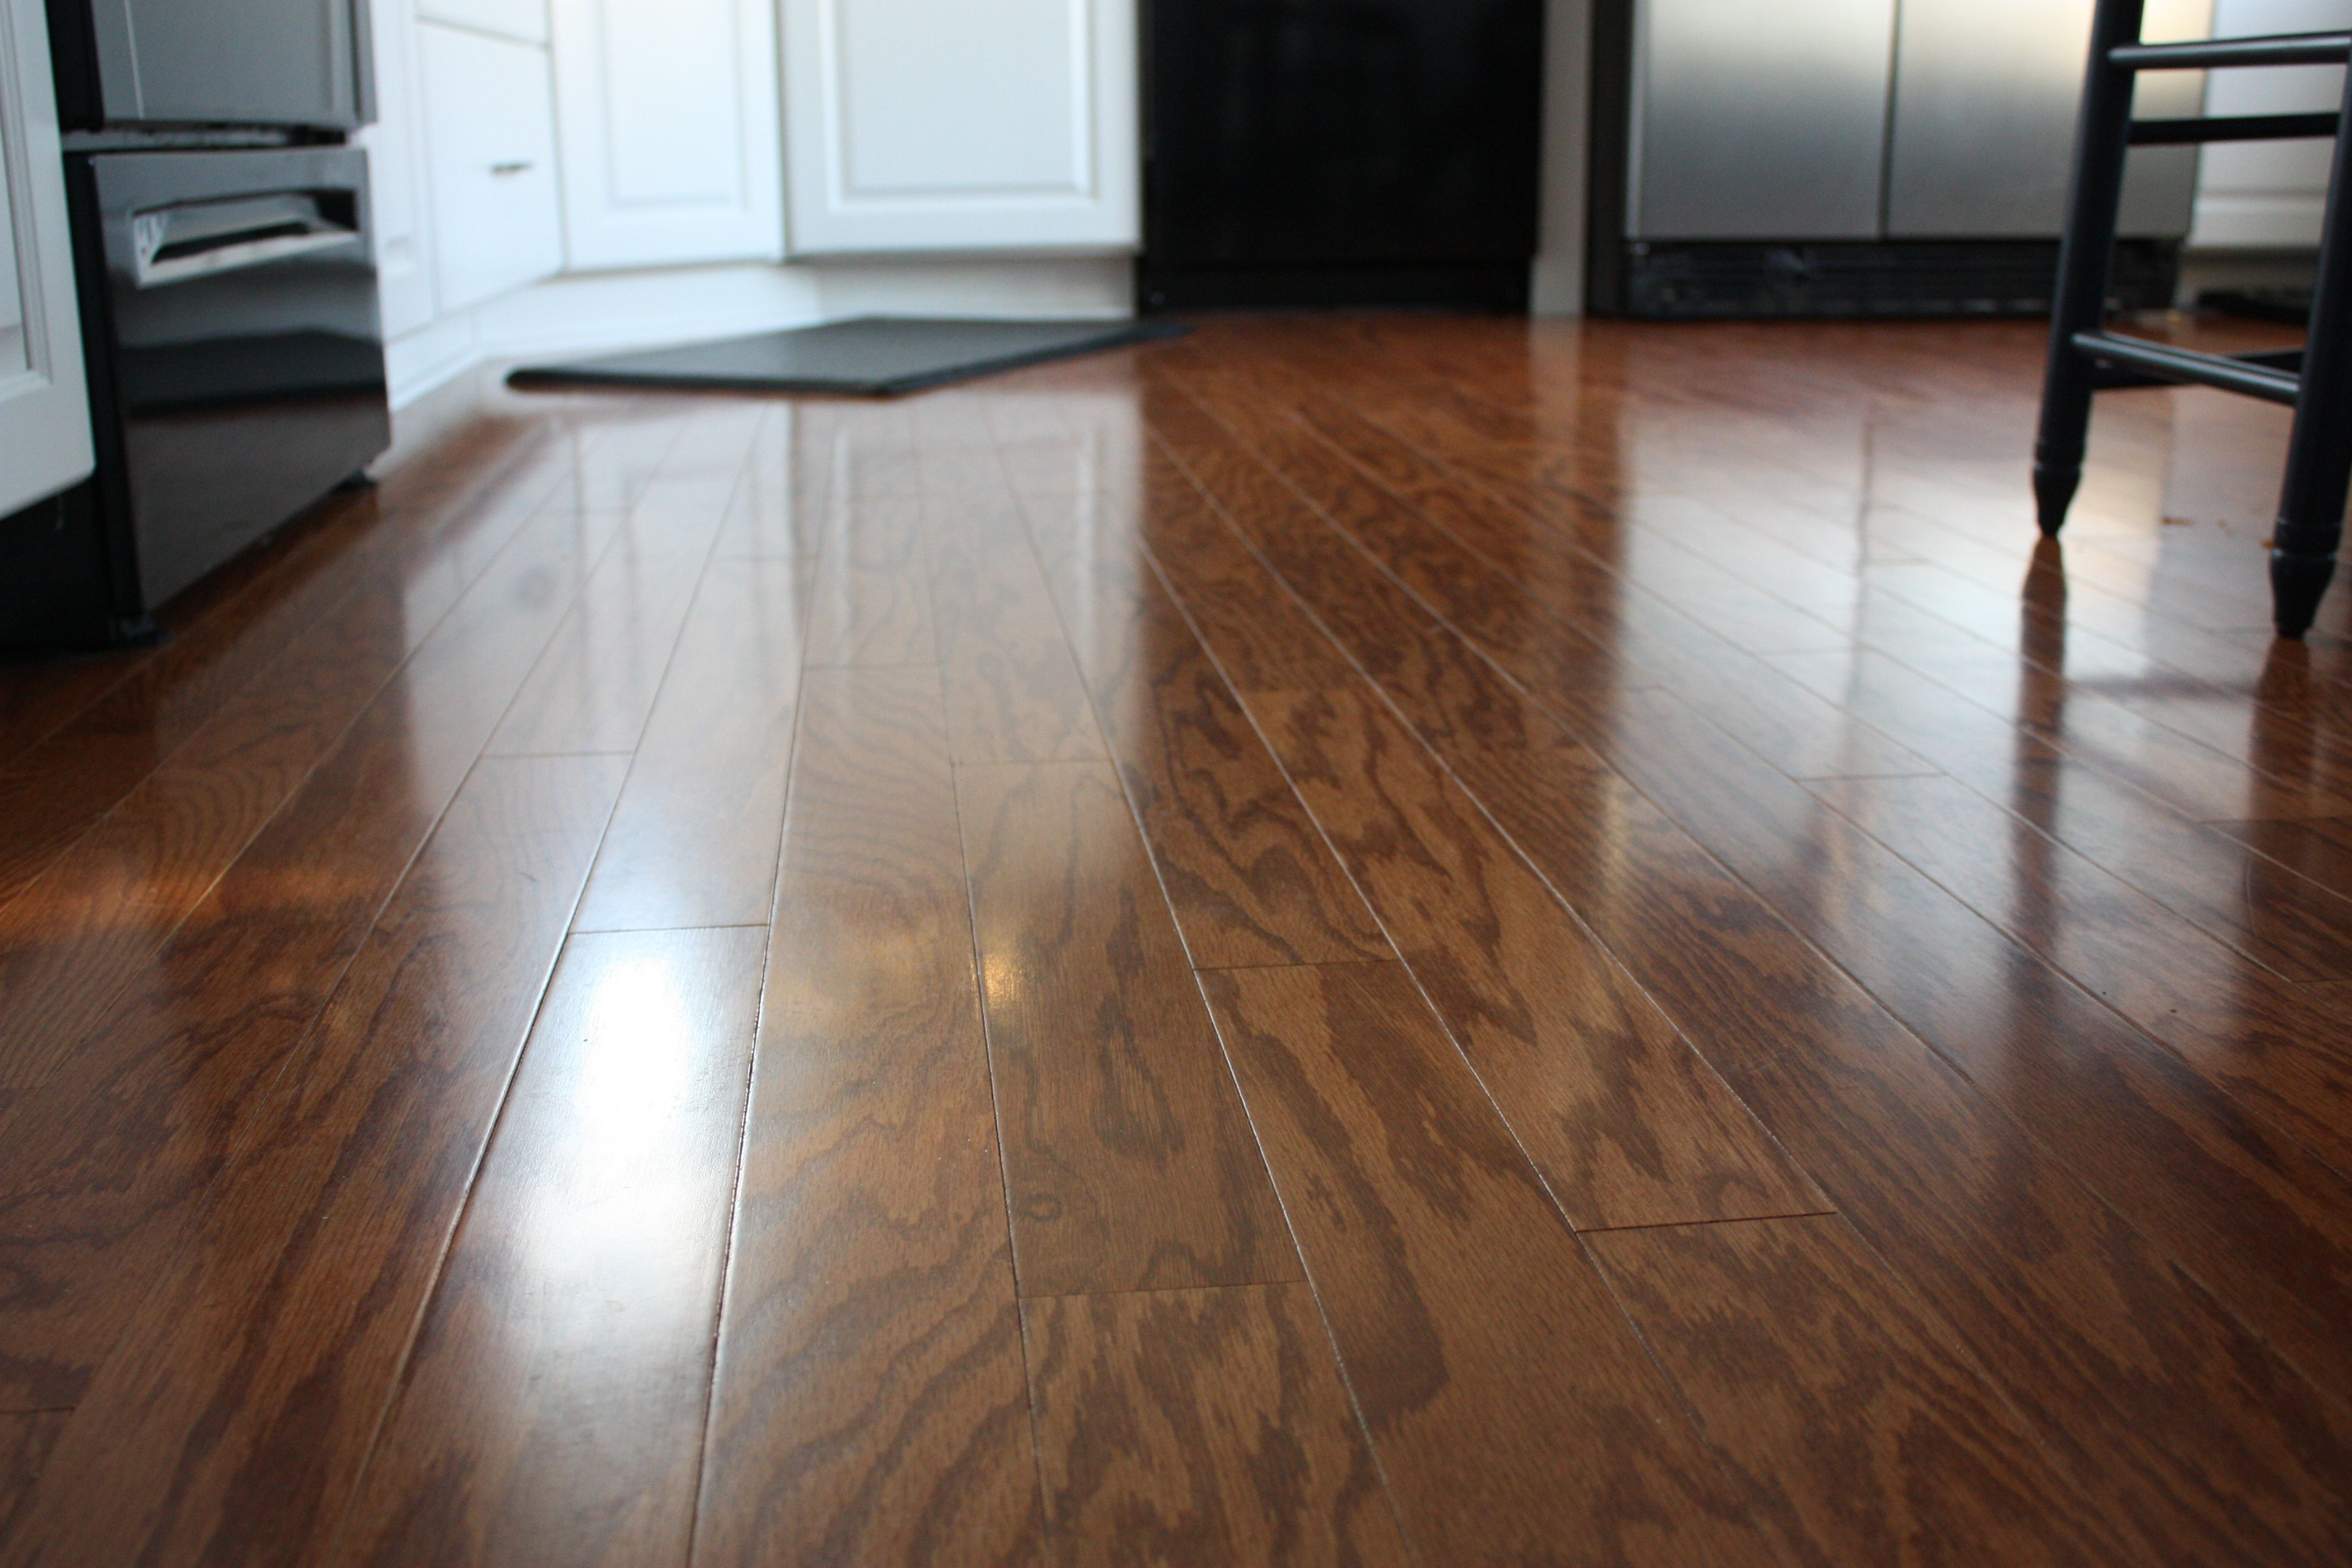 hardwood floor cleaning pads of house of order tip 2 focus on the floors cleaning pinterest inside house of order tip 2 focus on the floors